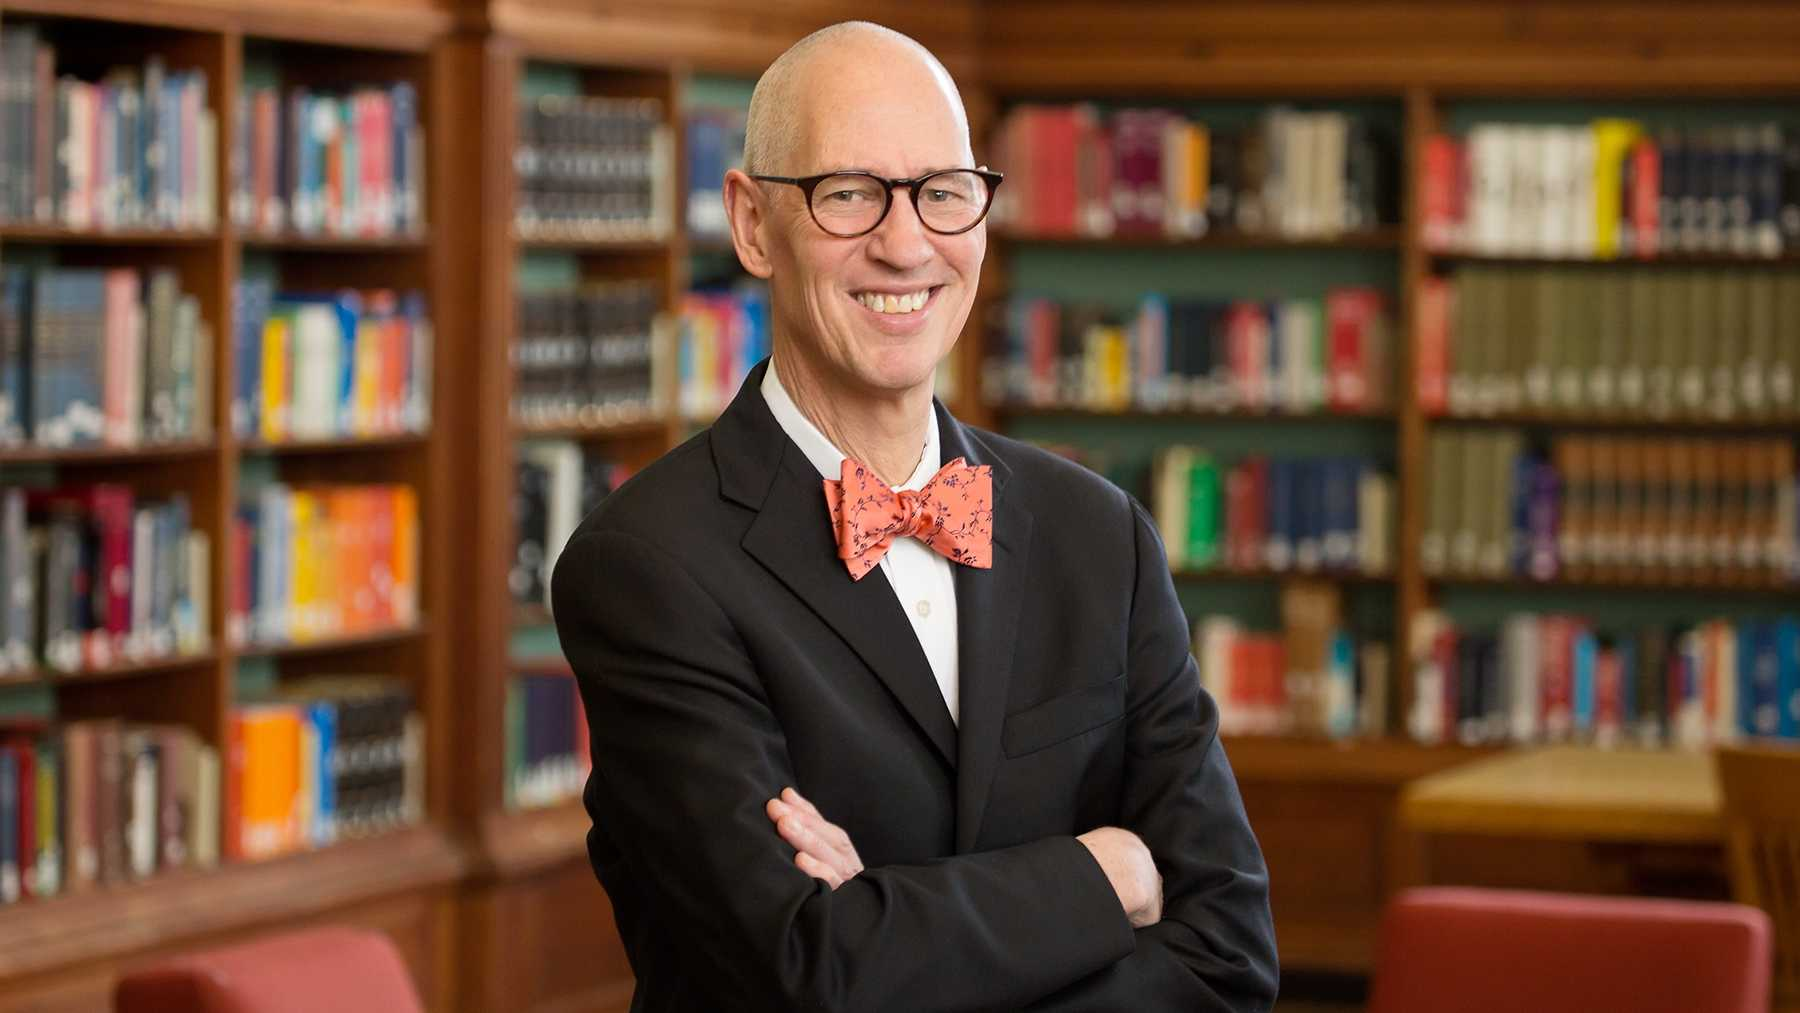 John Wilkin - Juanita J. and Robert E. Simpson  Dean of Libraries and University Librarian - is named interim vice chancellor for academic affairs and provost.